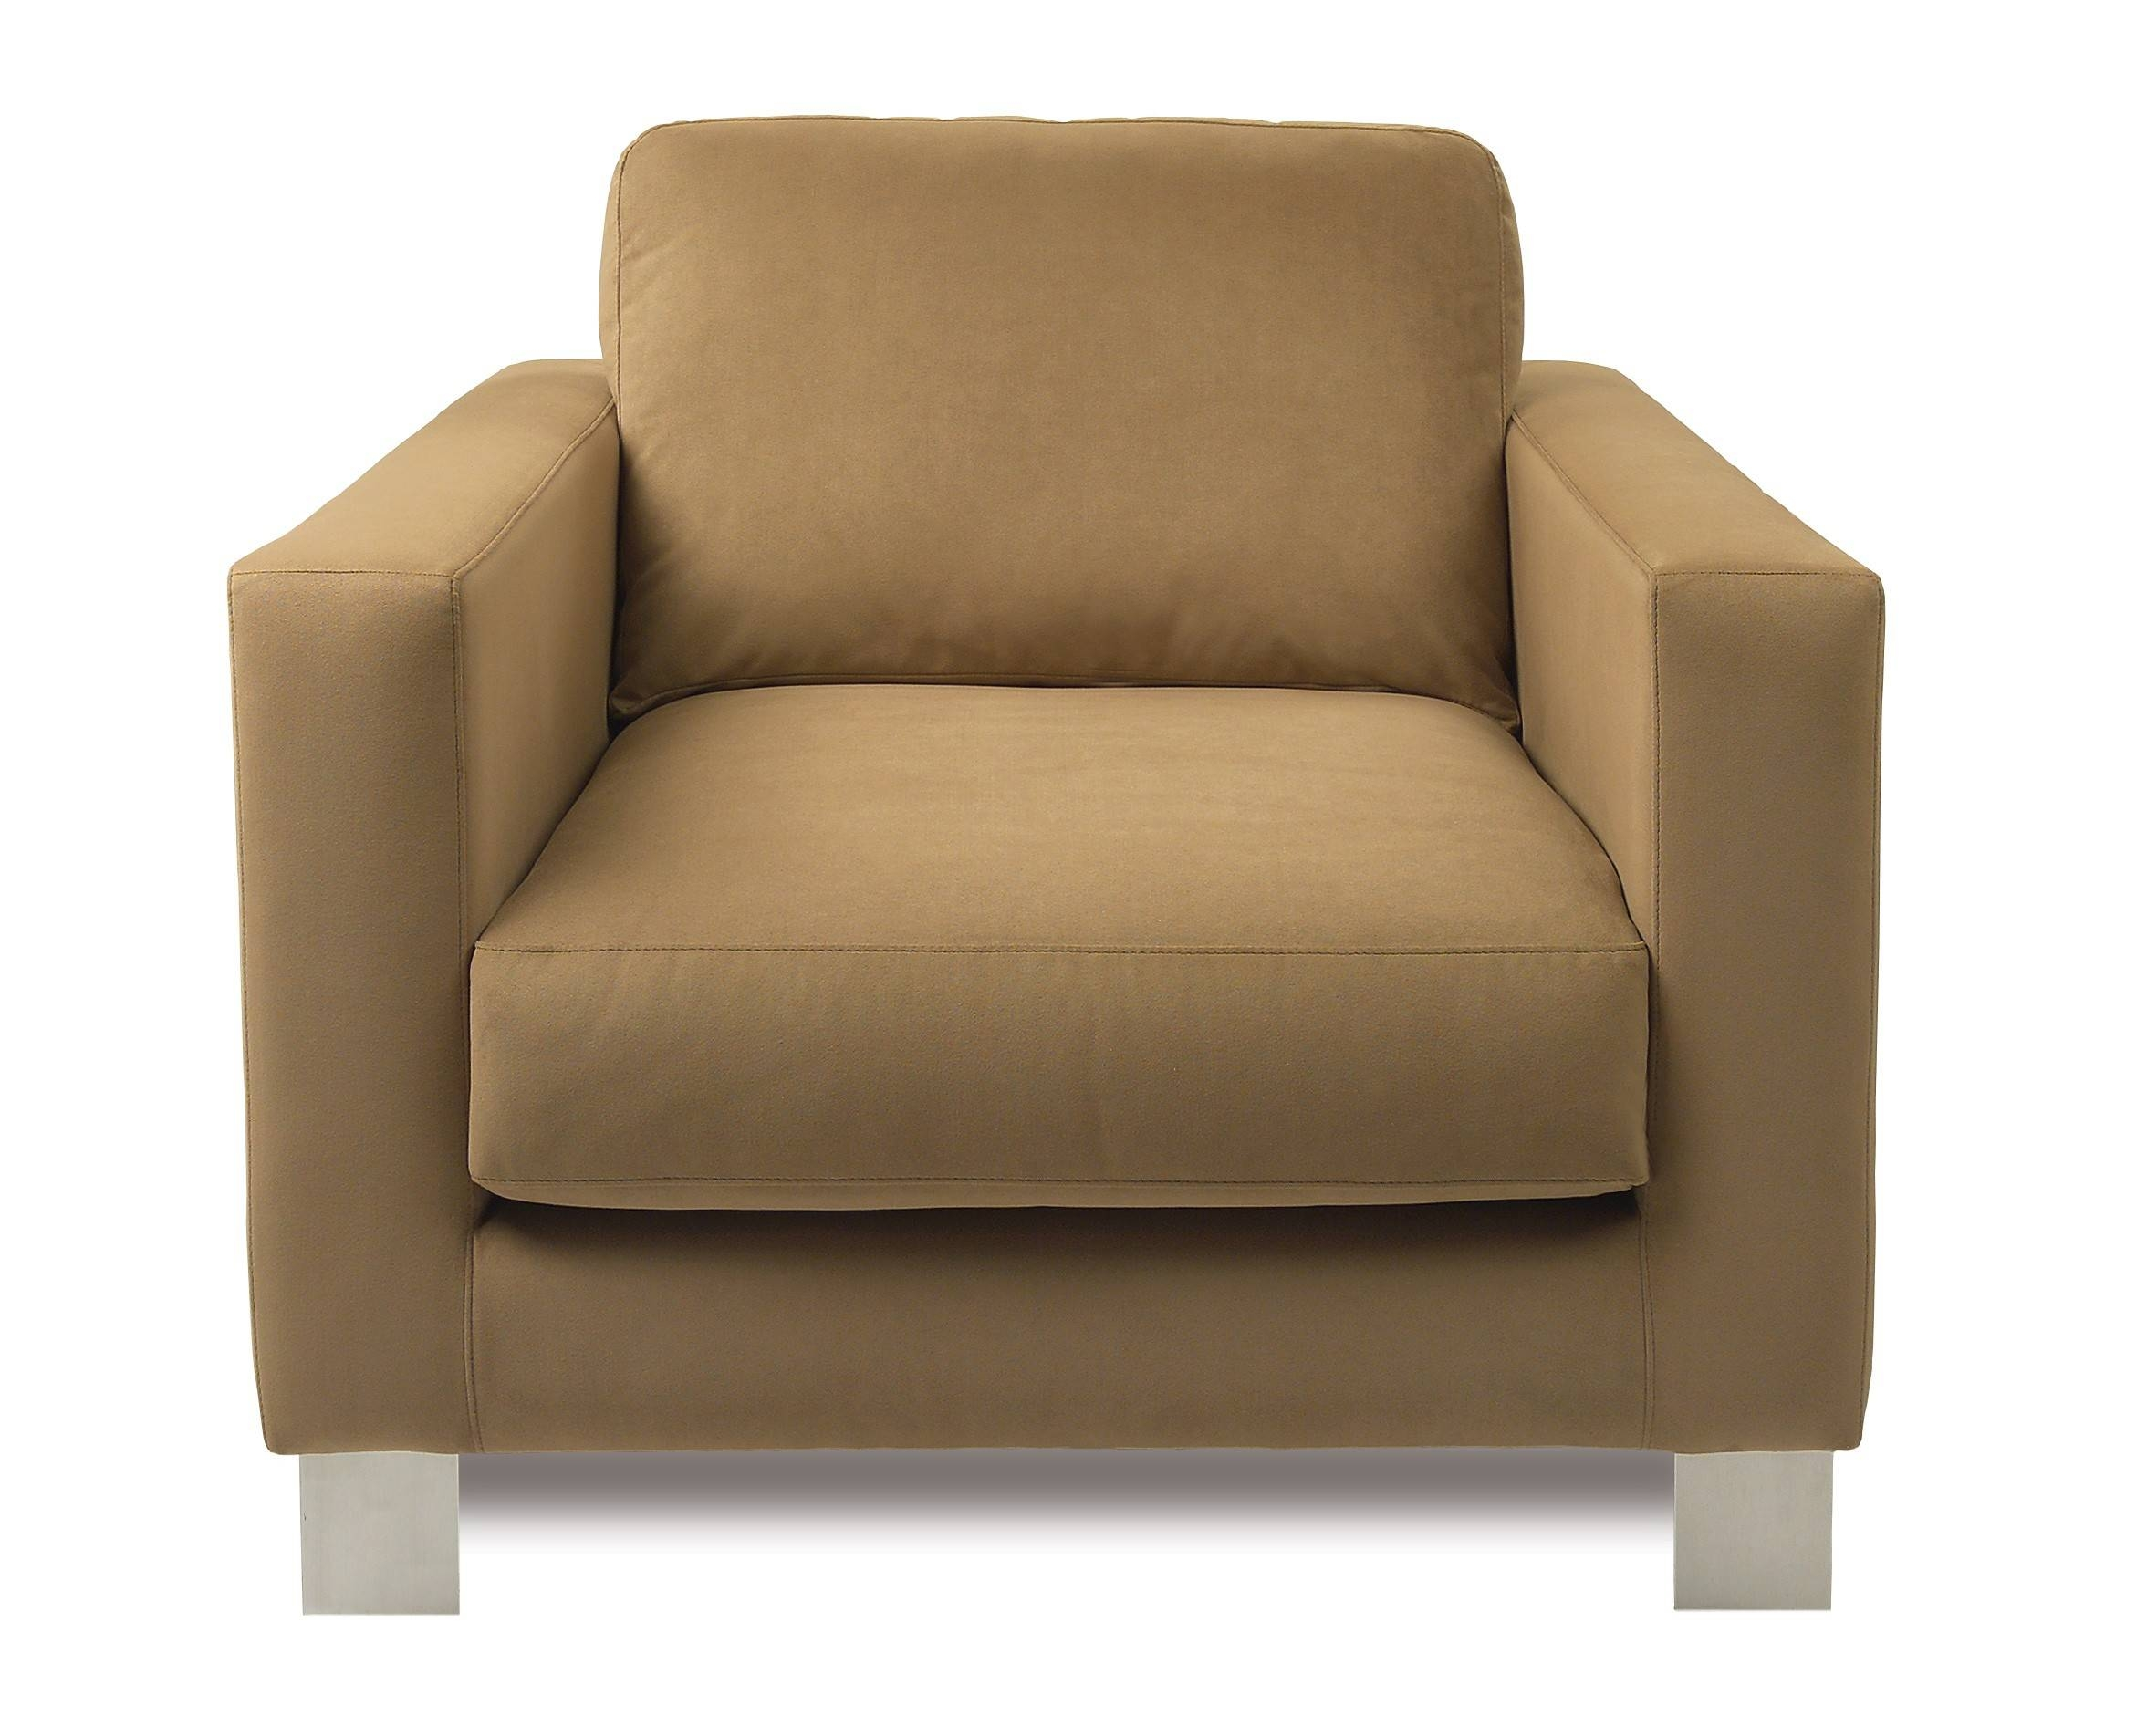 Shining Design Sofa Chairs American Leather Alessandro Sofa for Sofa With Chairs (Image 11 of 15)